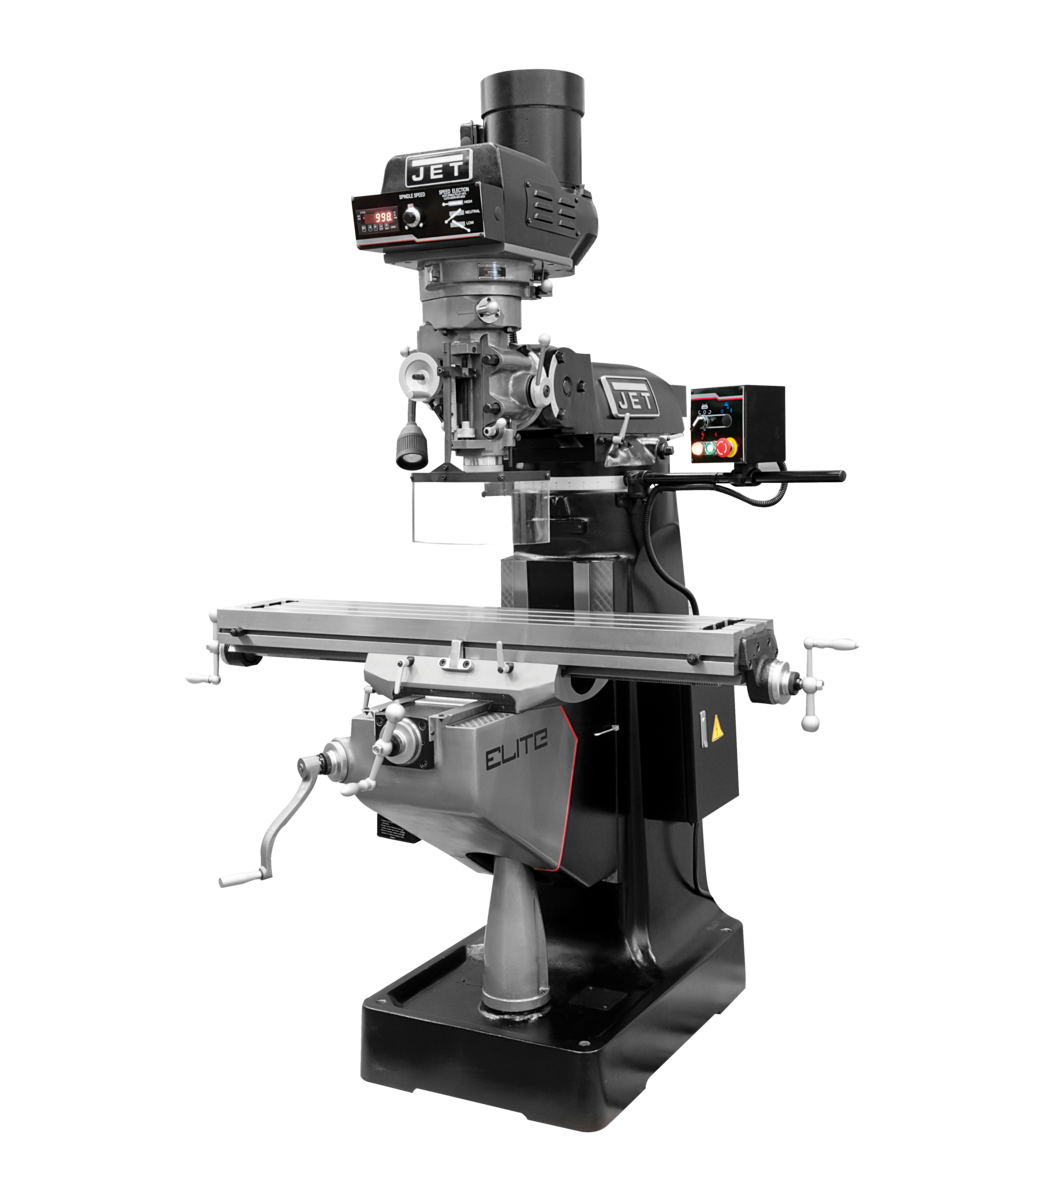 EVS-949 Mill with 2-Axis ACU-RITE 303 DRO and X-Axis JET Powerfeed and USA Made Air Draw Bar